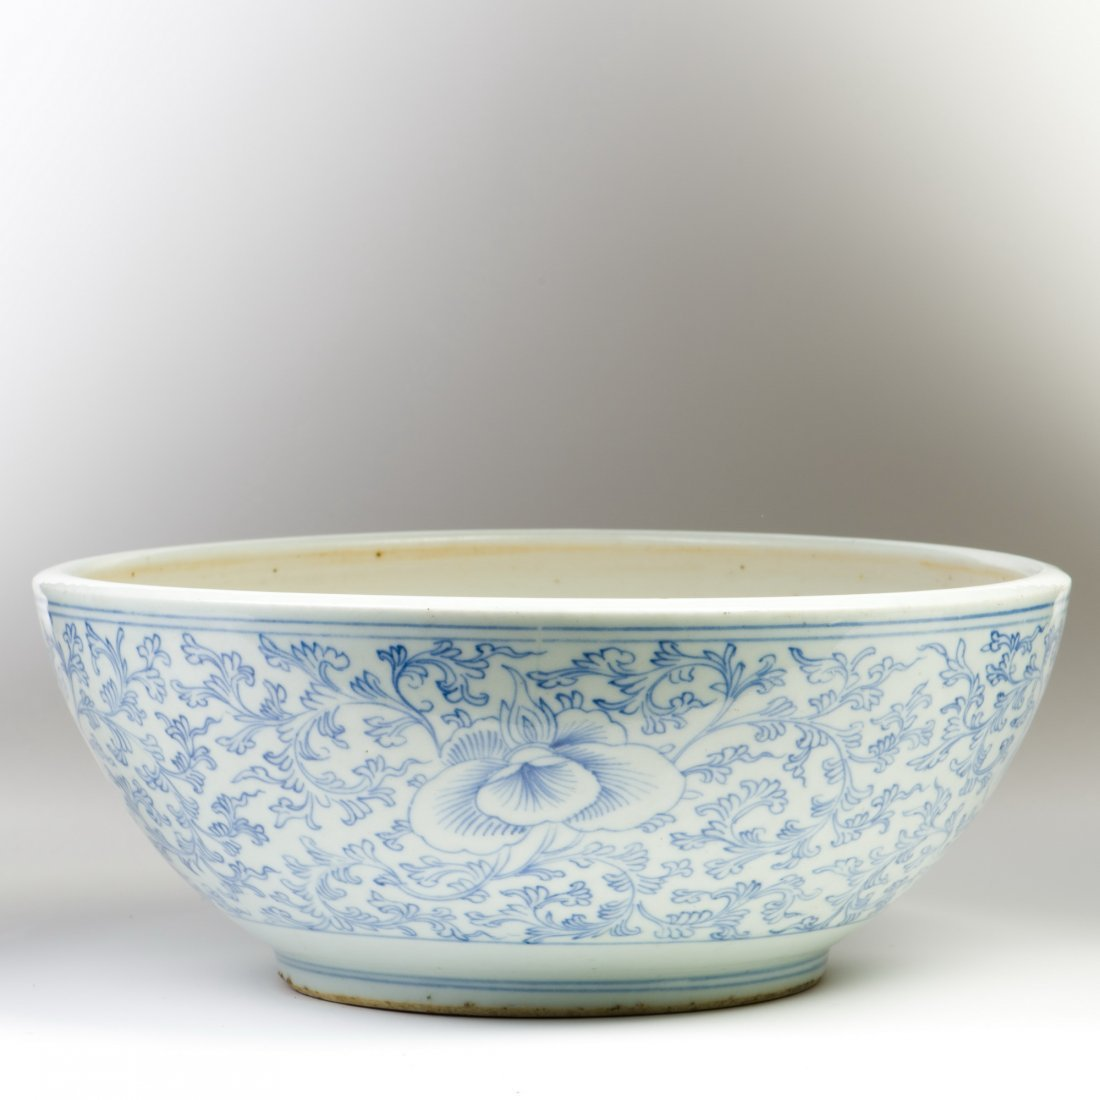 A LARGE BLUE AND WHITE PORCELAIN BOWL